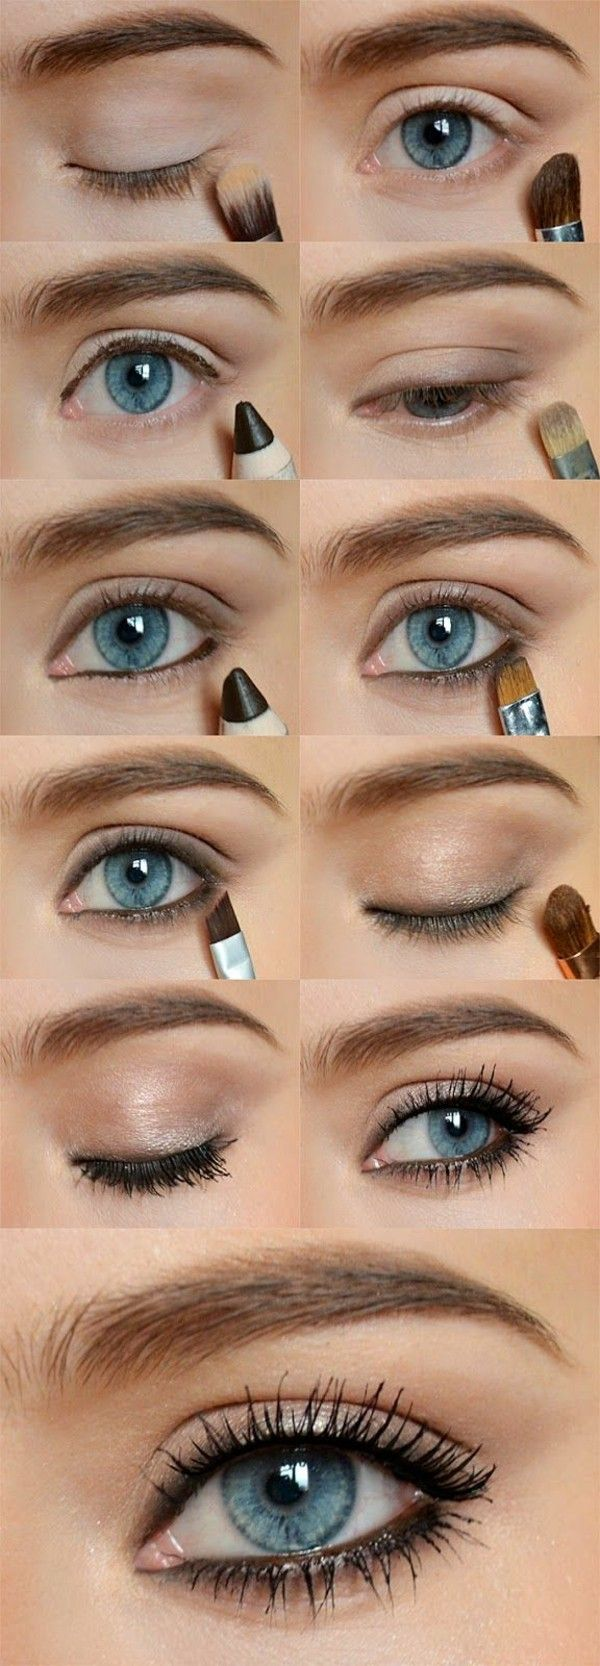 How to Apply an Eyeshadow – Step by Step Tutorial | Eye ...